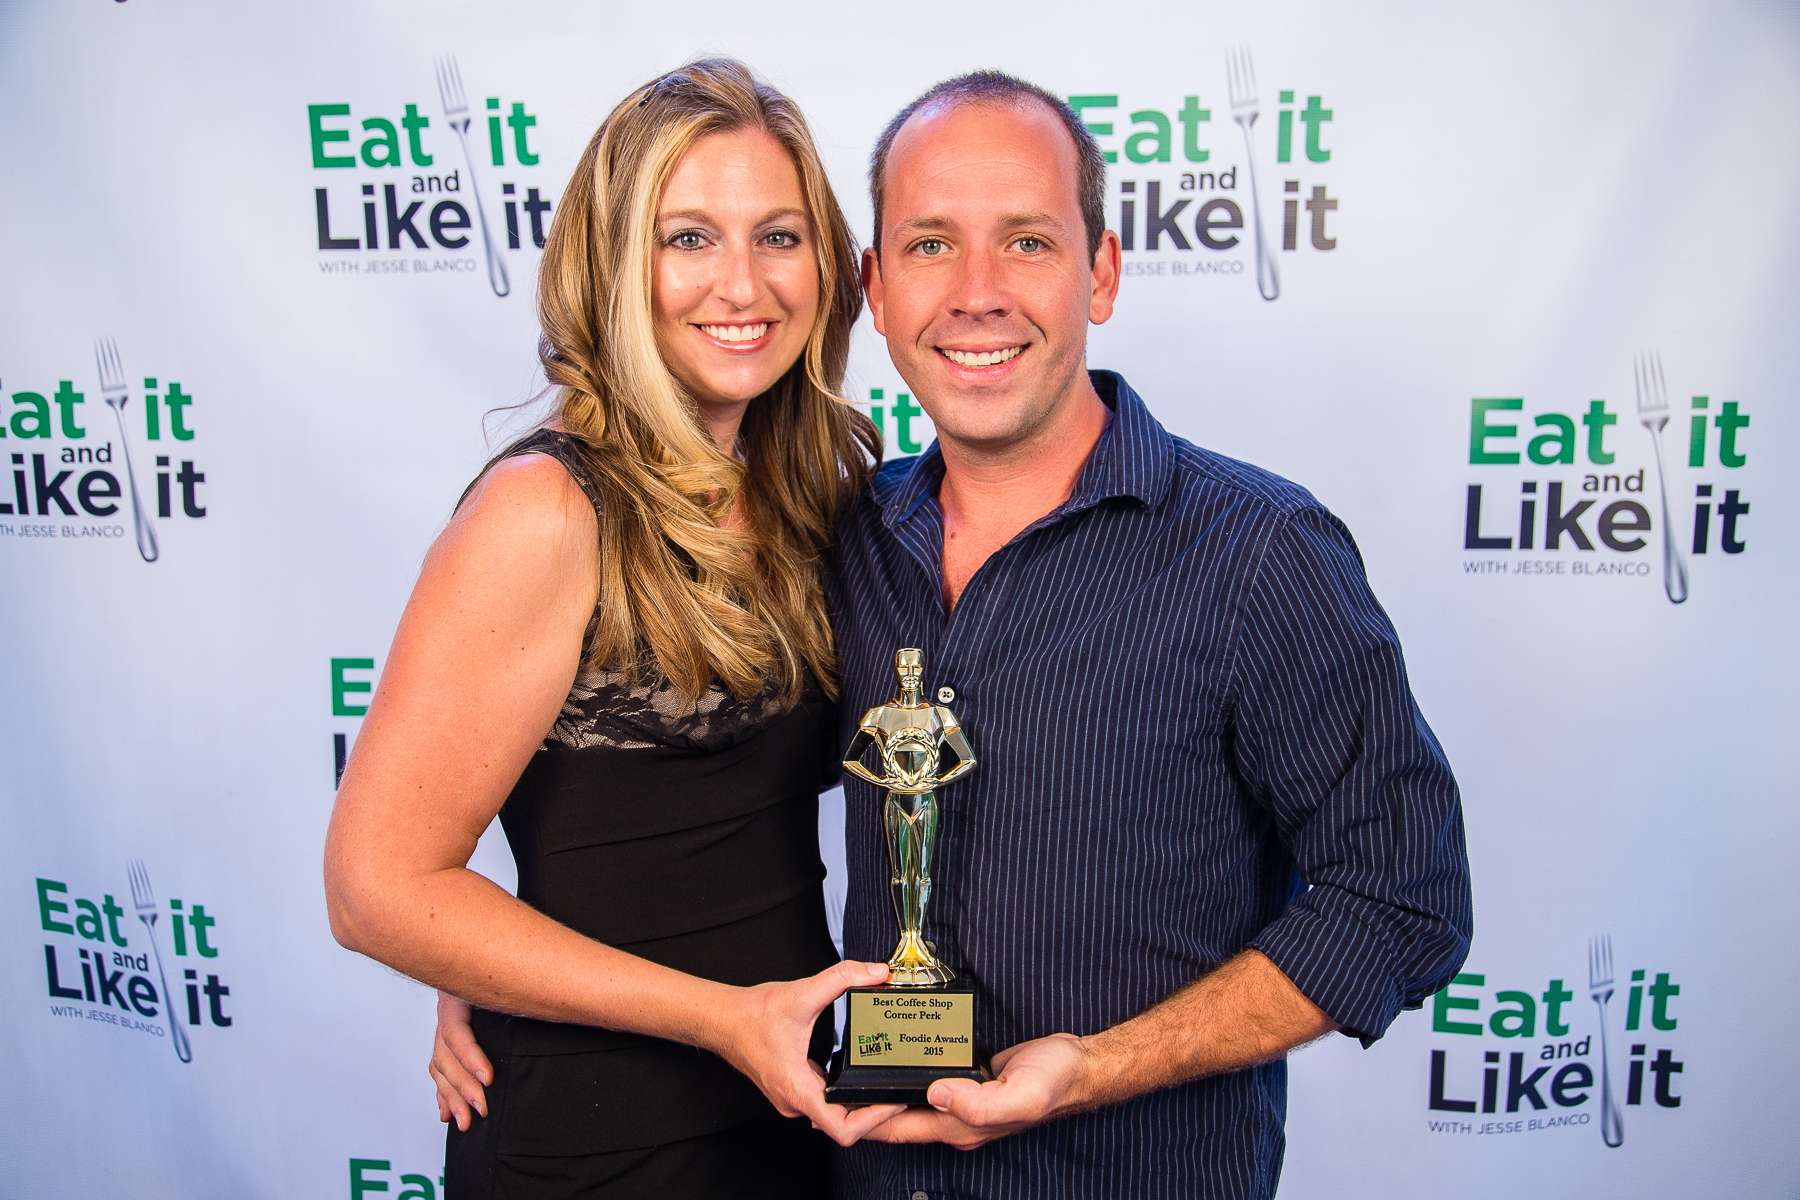 The 2016 Eat It and Like It Foodie Awards will be held at The Brice Hotel, May 22nd